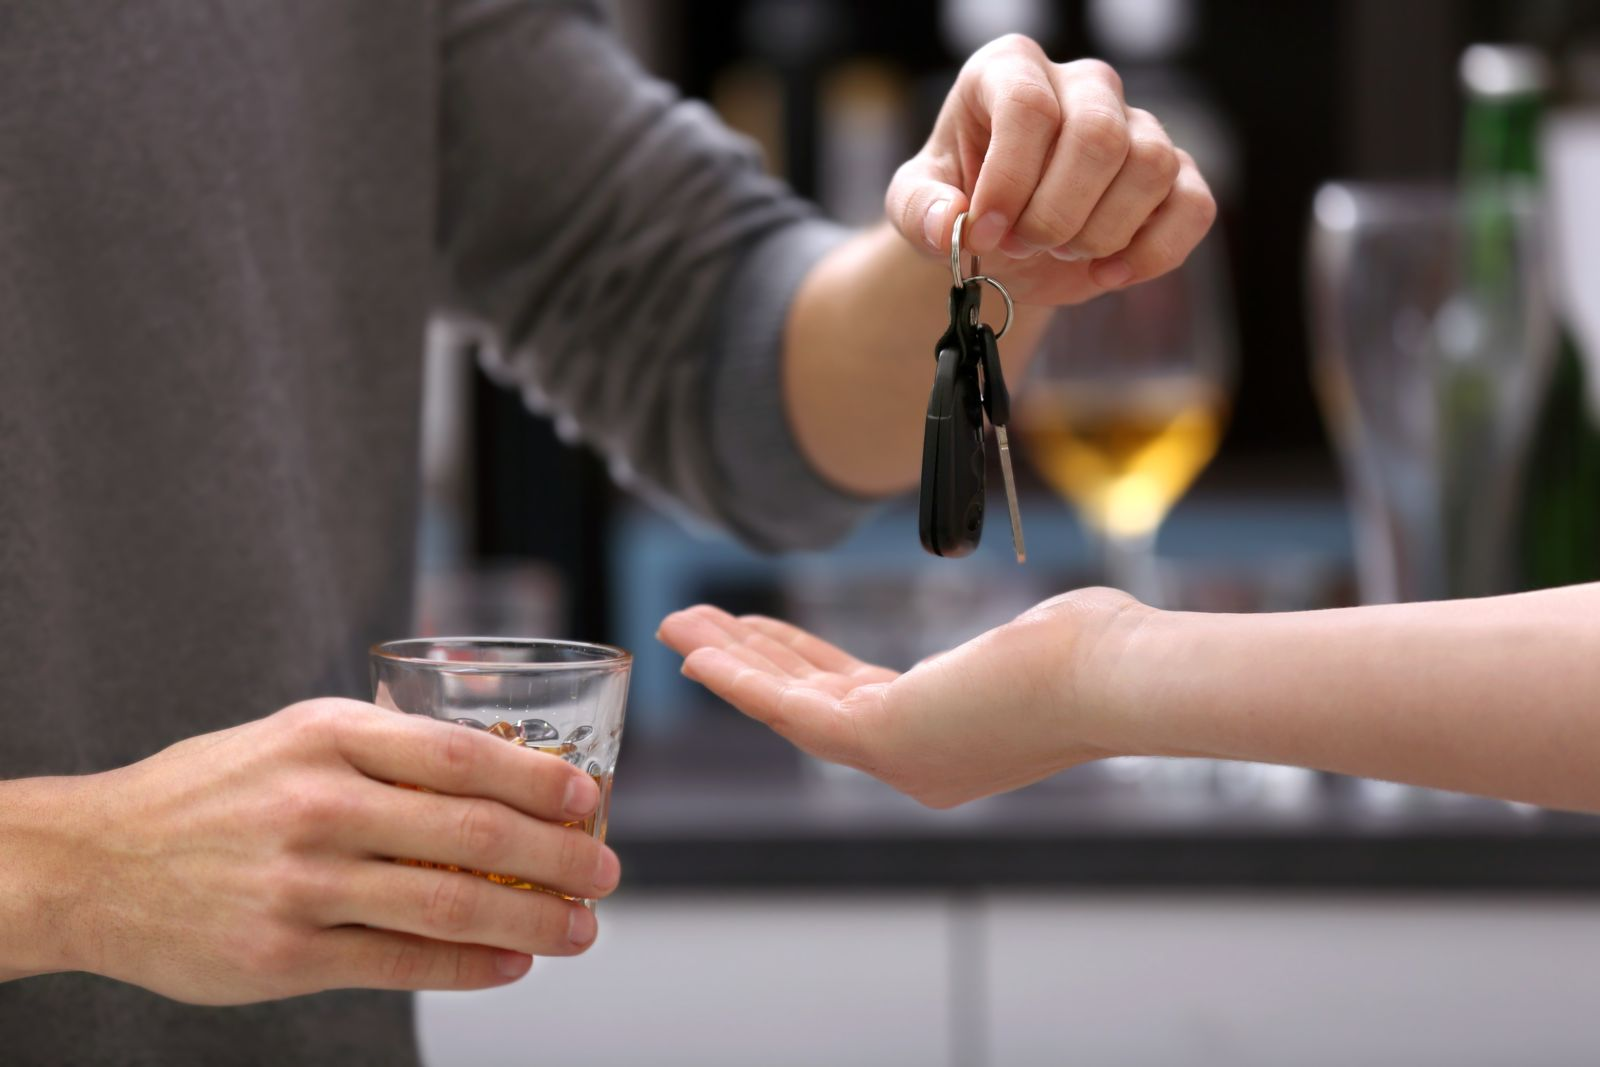 Intoxicated Man Holding a Drink and Handing Over His Keys